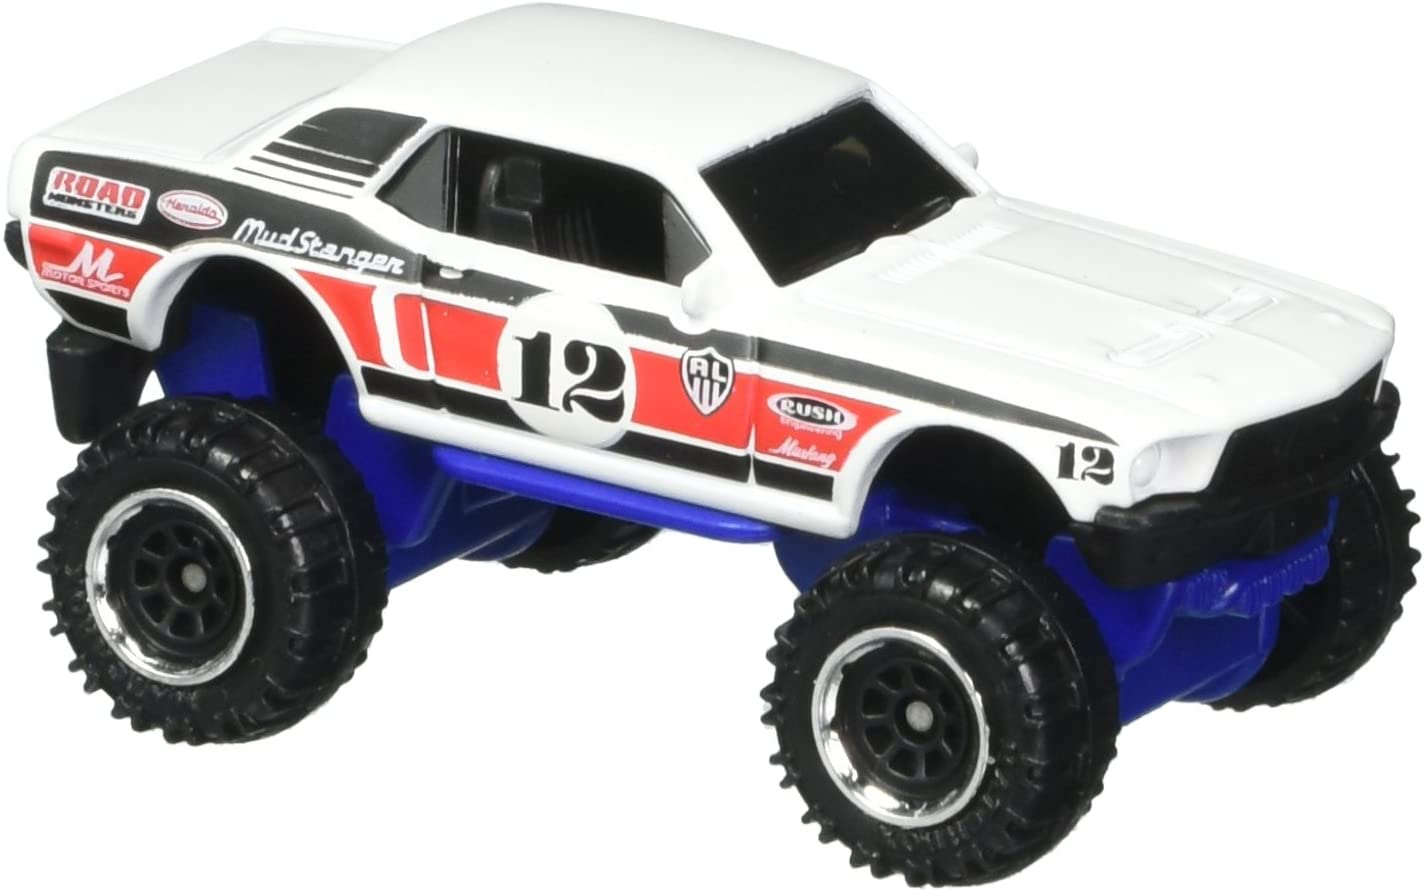 Matchbox 2017 MBX Explorers '68 Ford Mustang 124/125, White